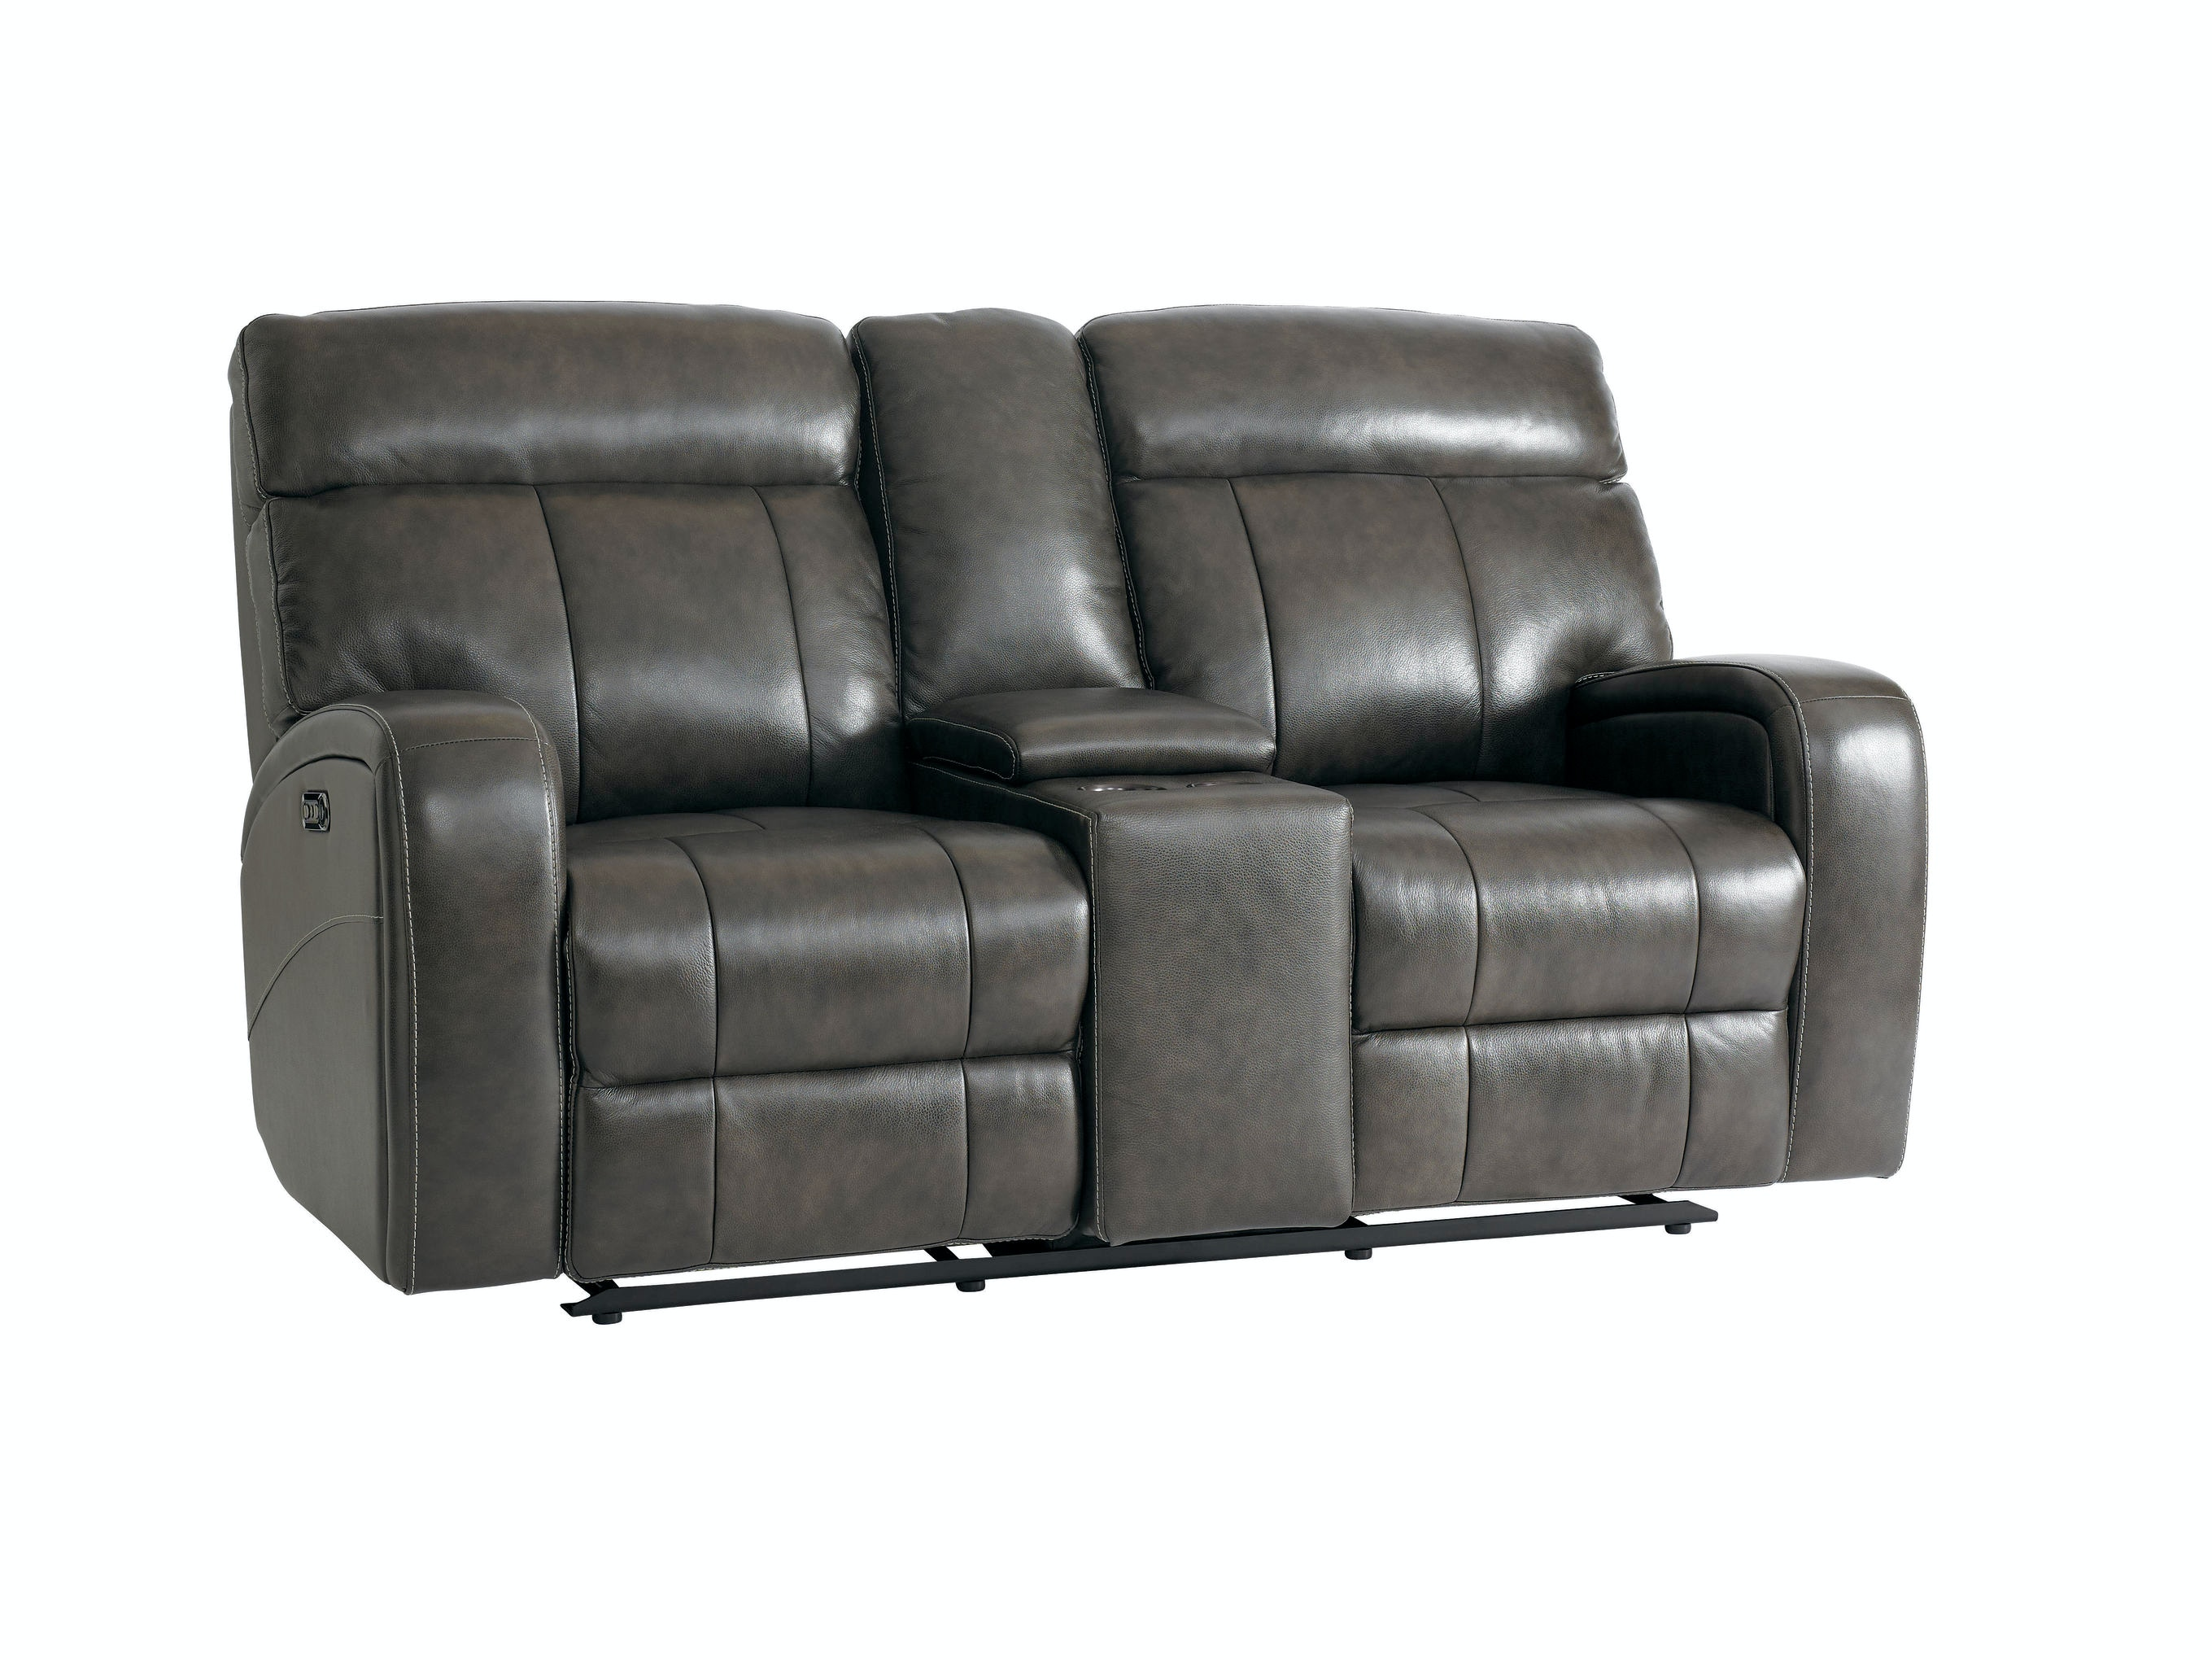 Bassett Beaumont Power Reclining Loveseat with Console 742064  sc 1 st  Talsma Furniture : power recliner loveseat with console - islam-shia.org